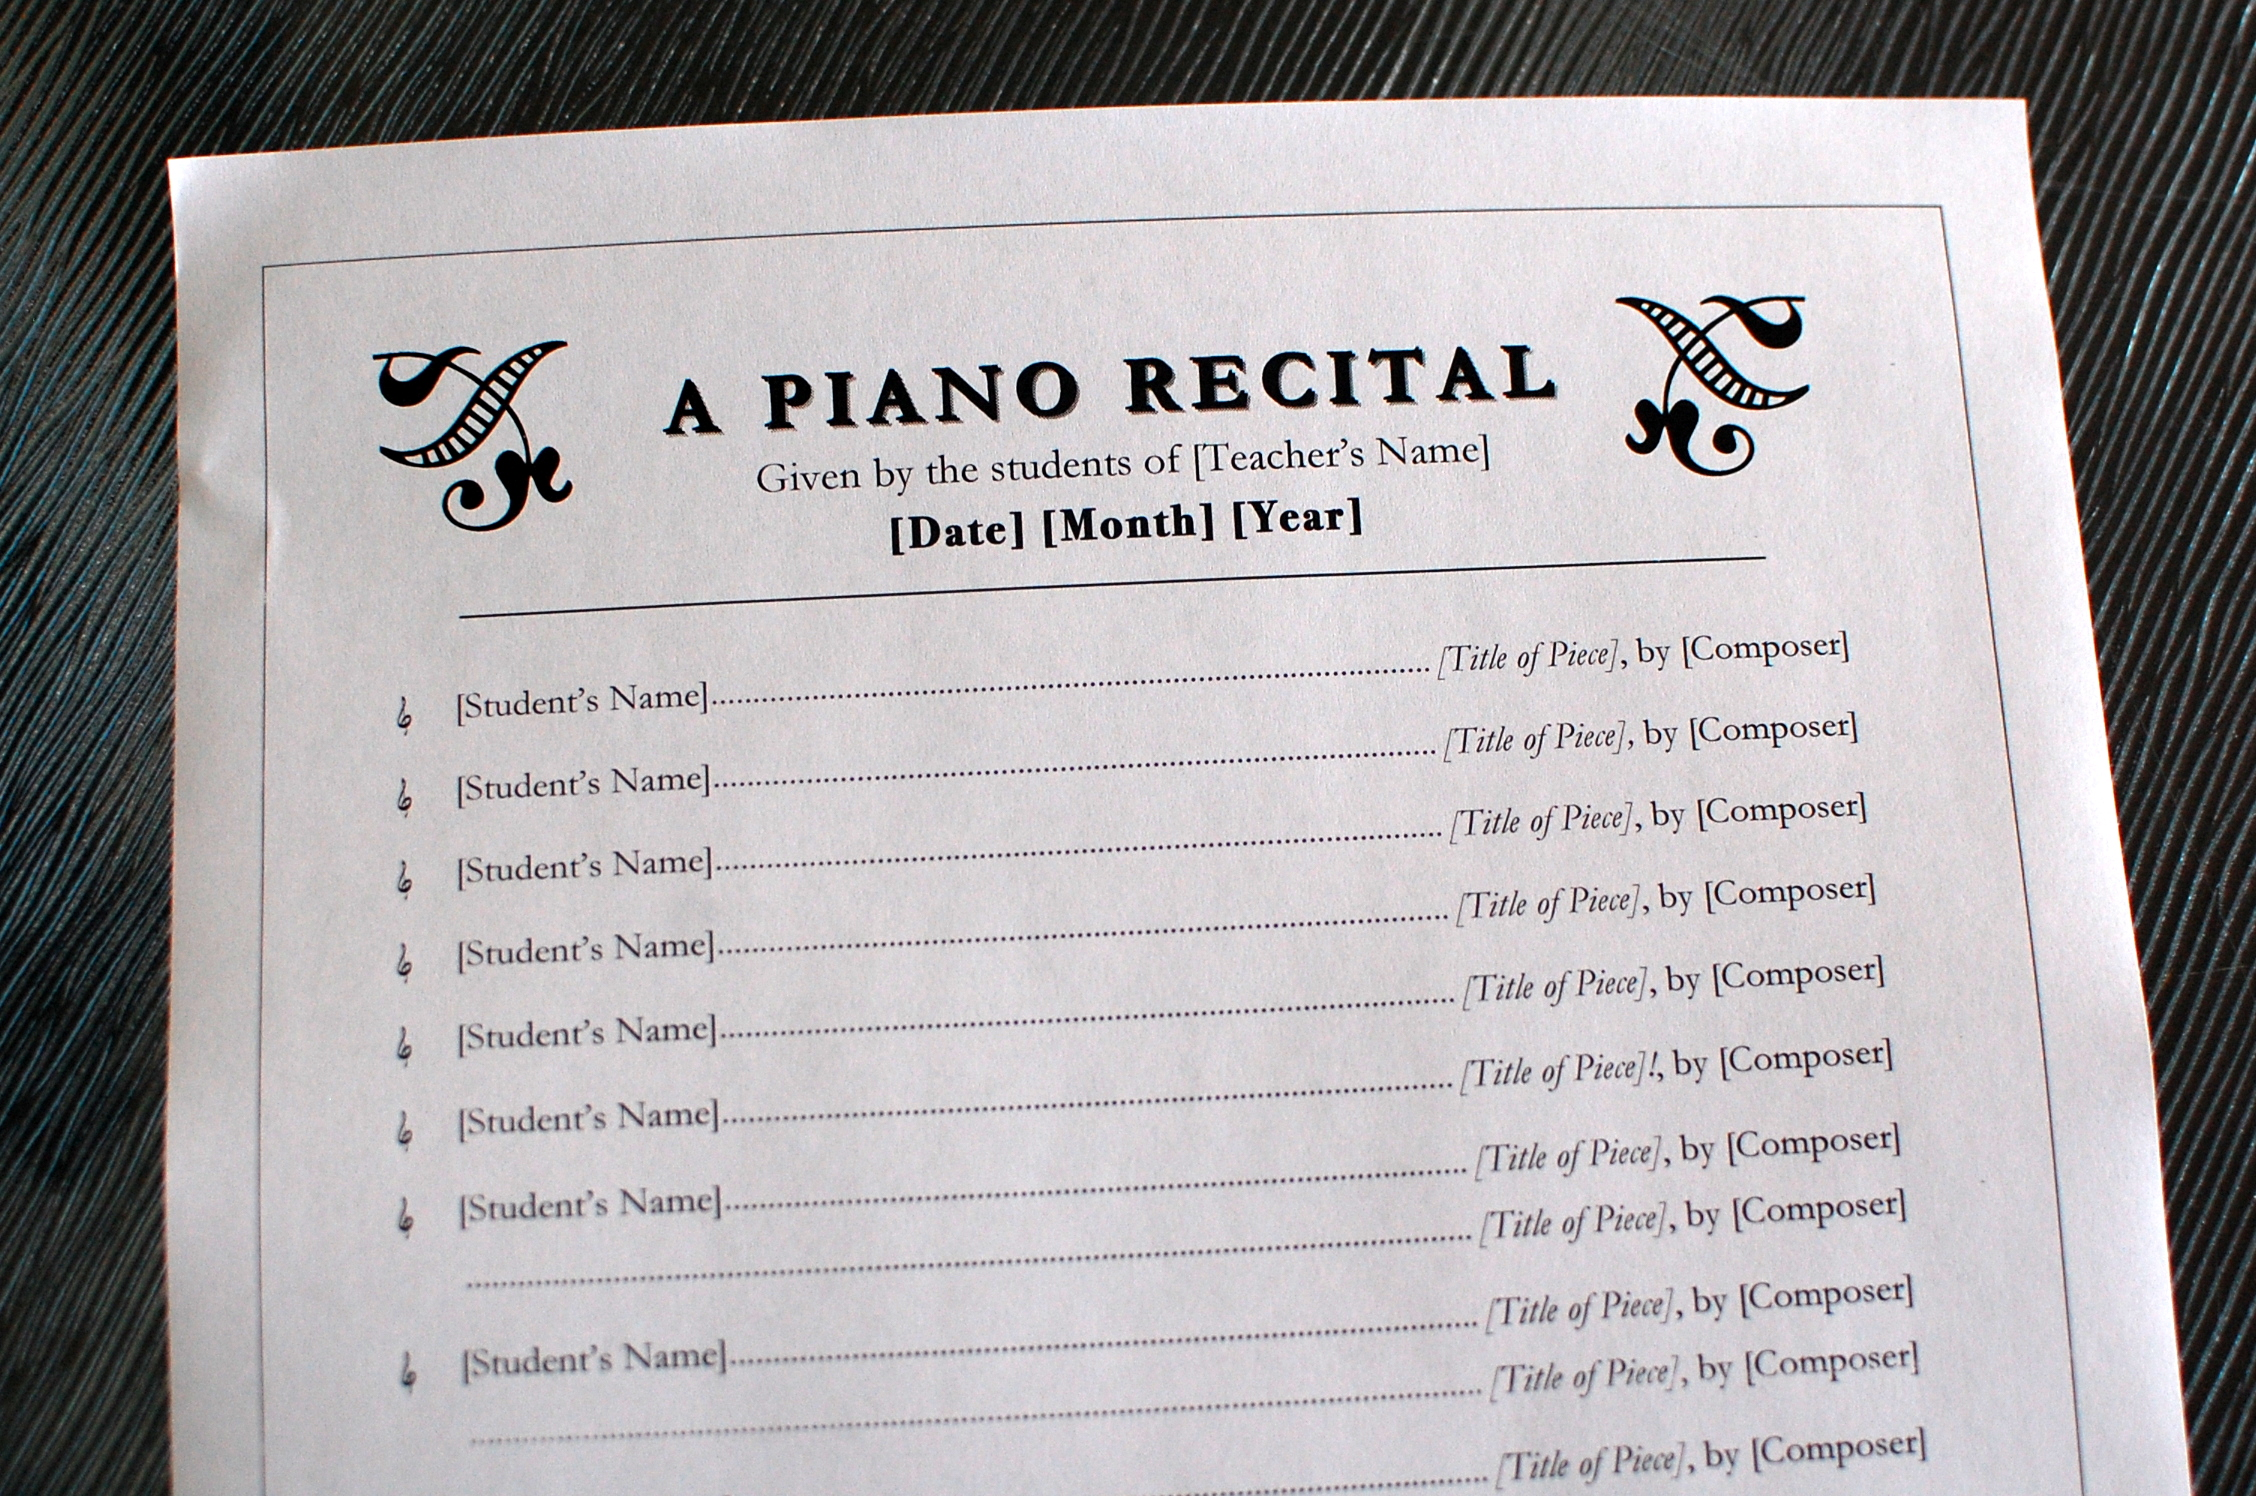 Recital template 101 best images about piano recital ideas on free recital templates look sharp composecreate com printables pronofoot35fo Image collections